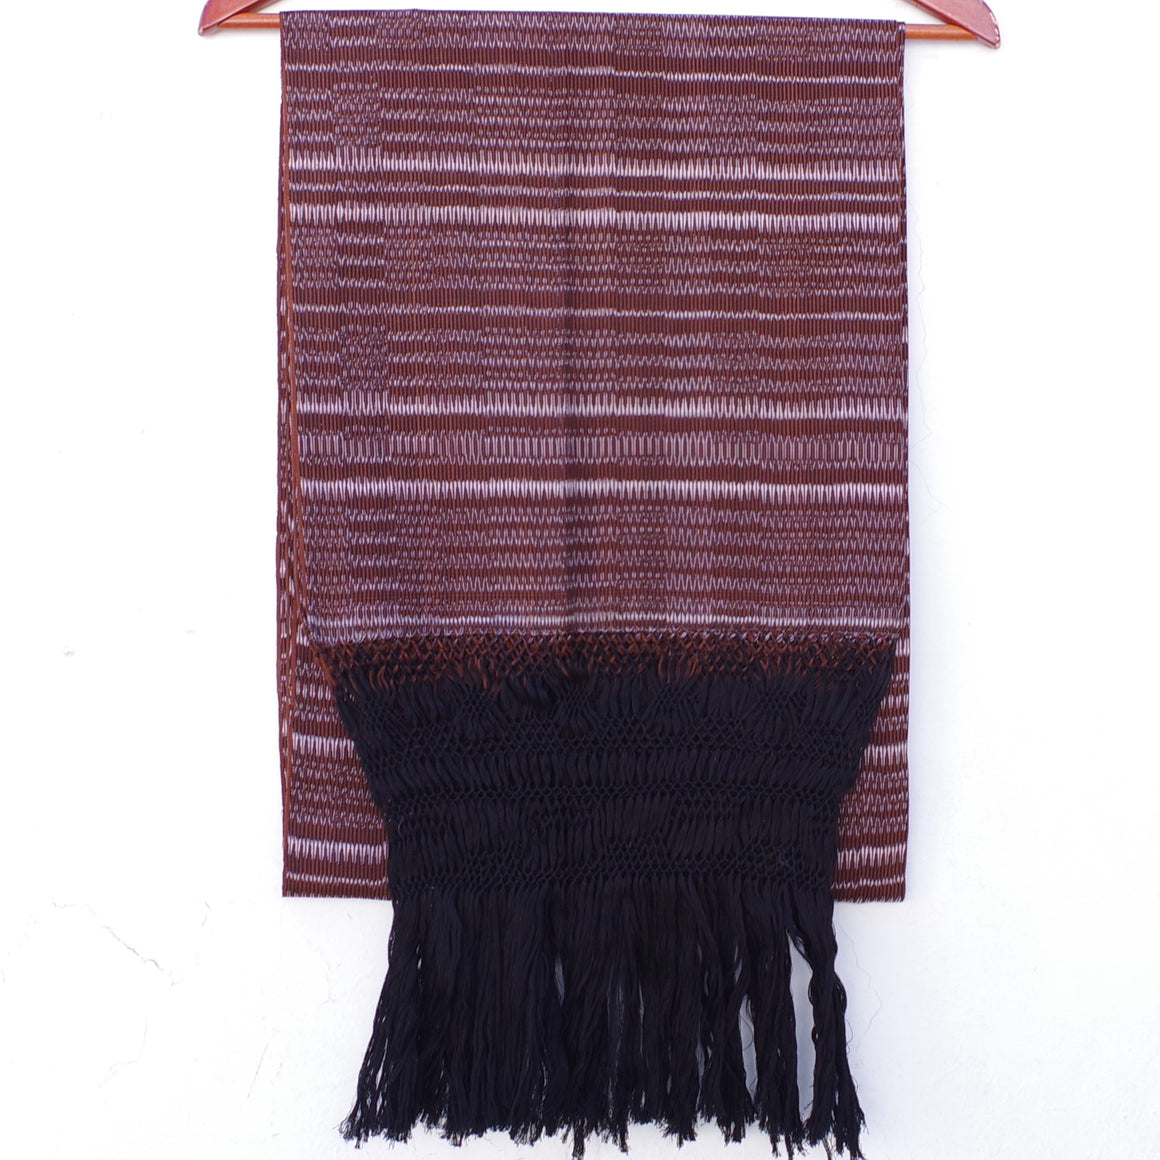 Mexican Rebozo Shawl with Black Fringes Embroidered with Pure Cotton from Tenancingo